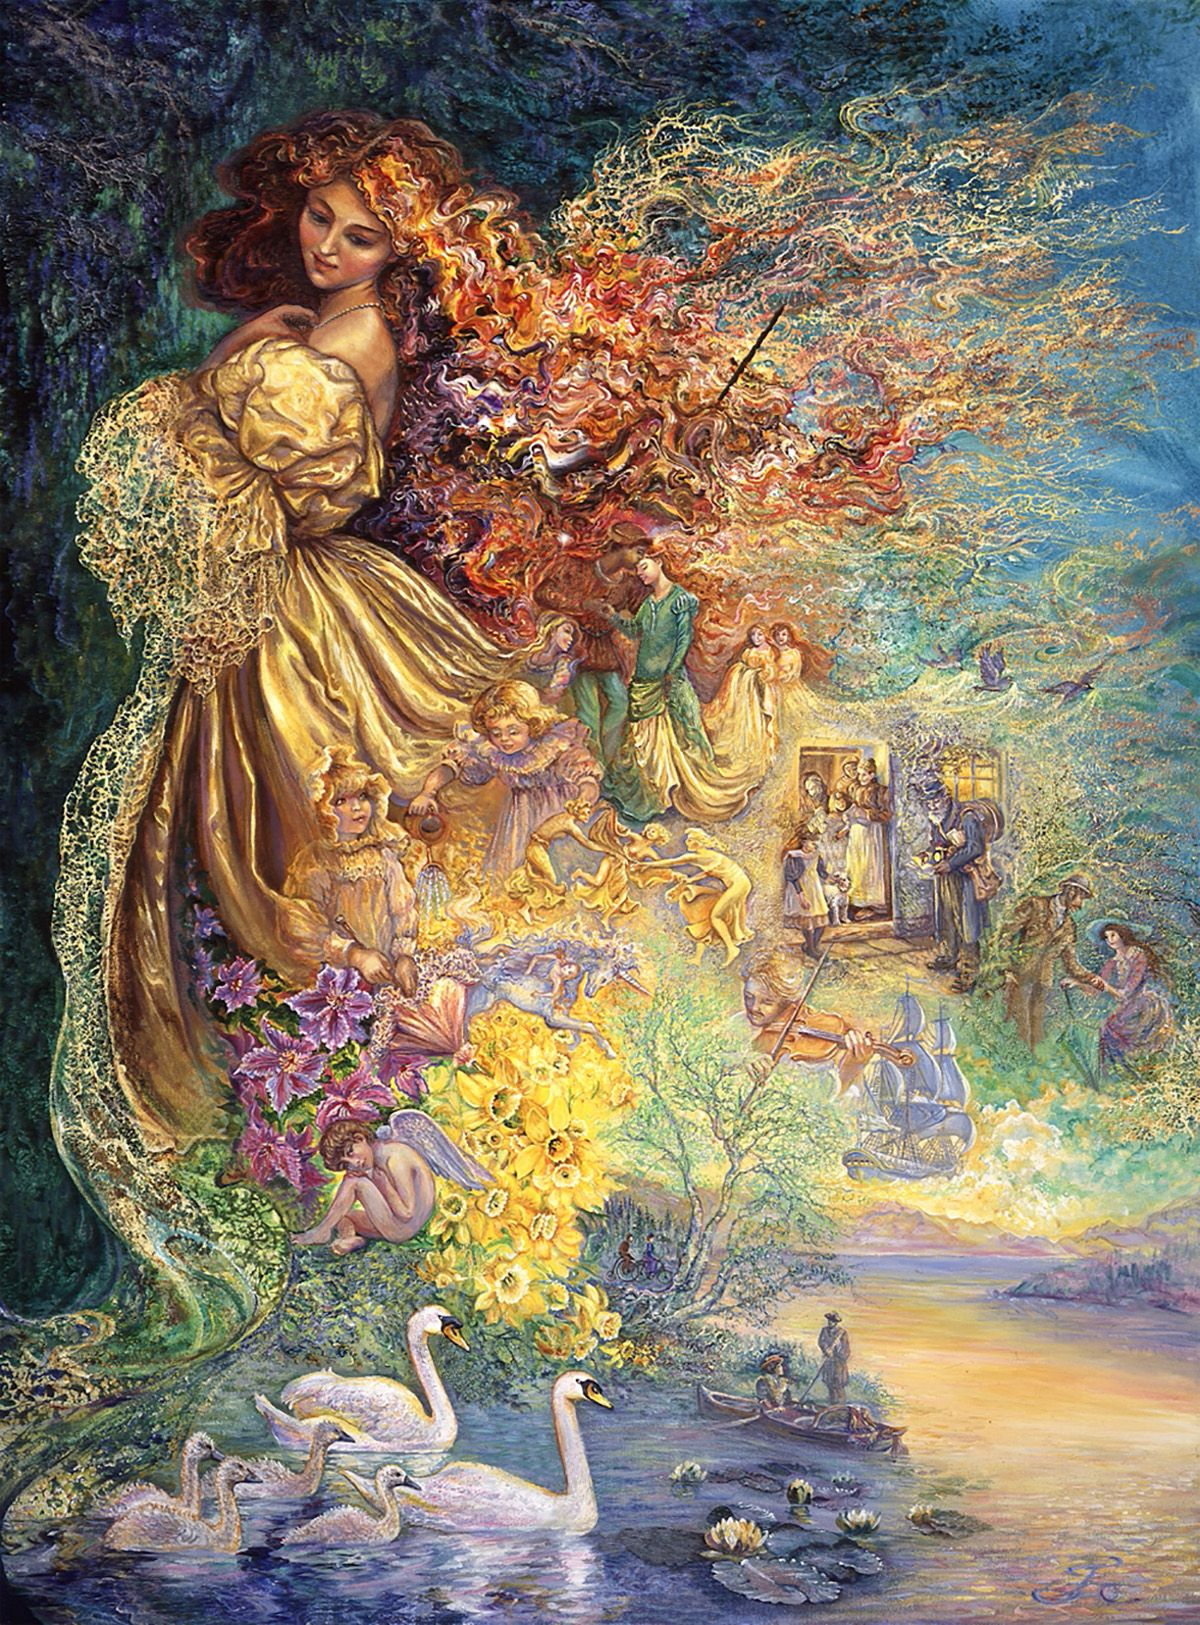 Dress Of Day Dreams 2 Par Josephine Wall Josephine Wall Art Fantasy Art